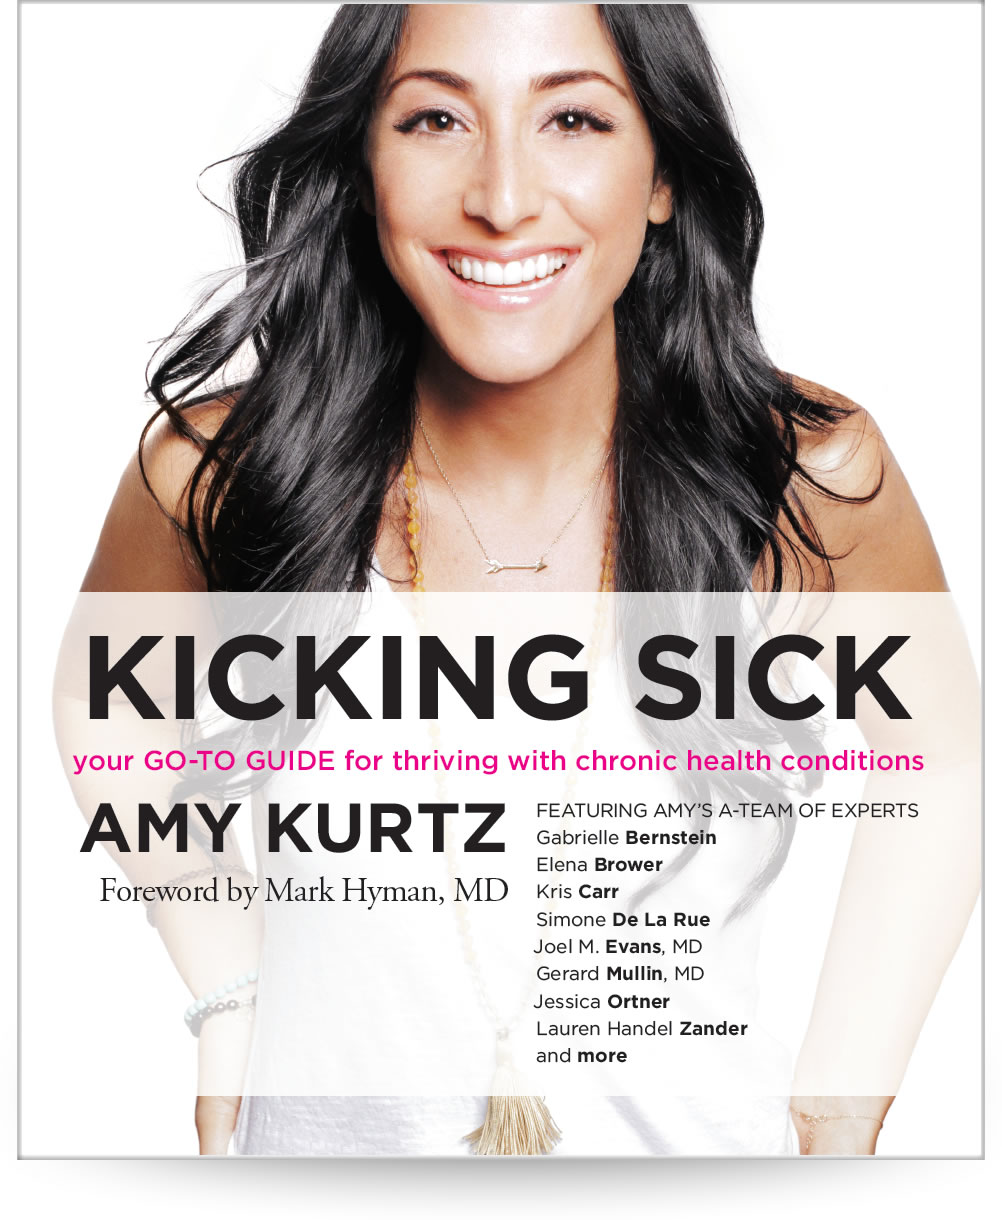 Kicking Sick: Your go-to guide for thriving with chronic health conditions by Amy Kurtz